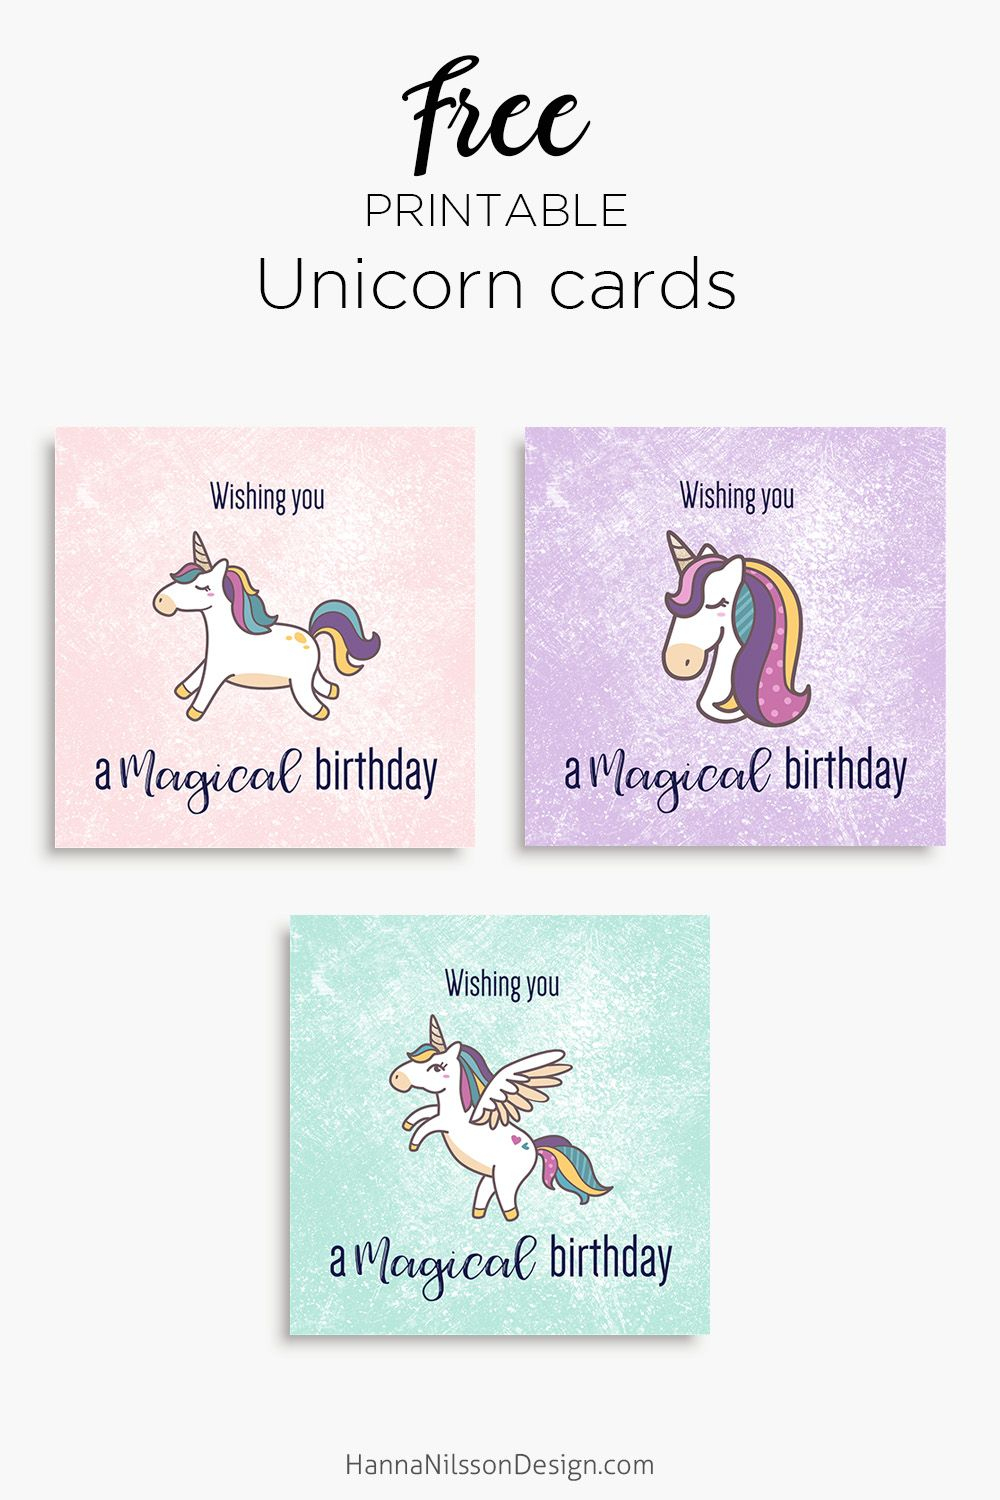 Magical Unicorn Birthday Printable Cards | Tis' Better To Give - Free Printable Greeting Card Sentiments